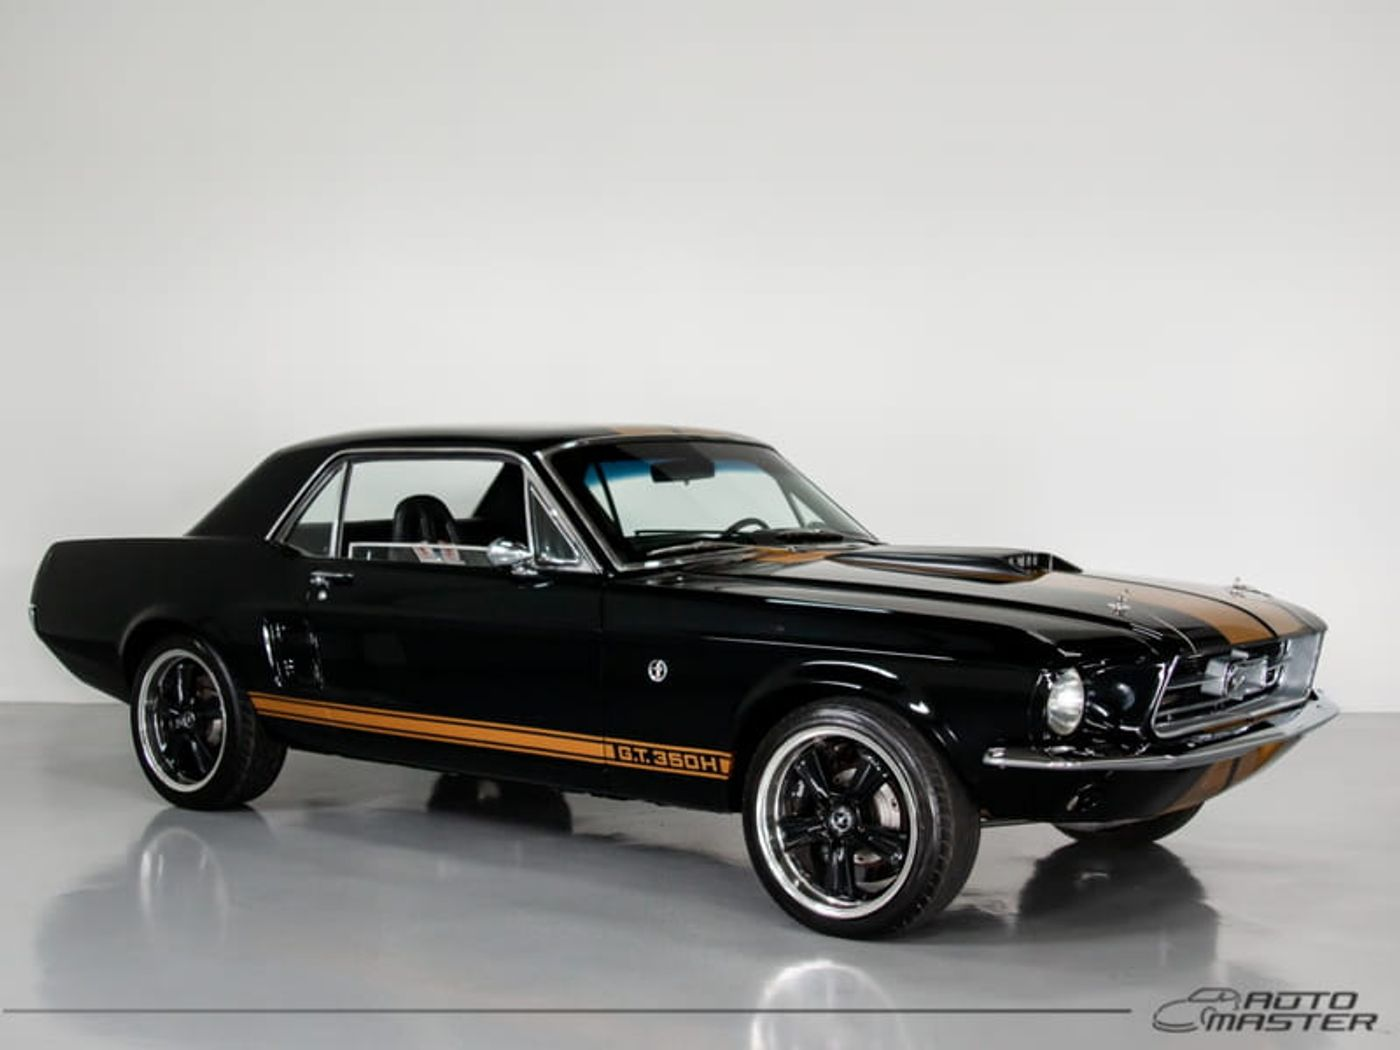 Ford Mustang GT Hard Top 5.0 V8